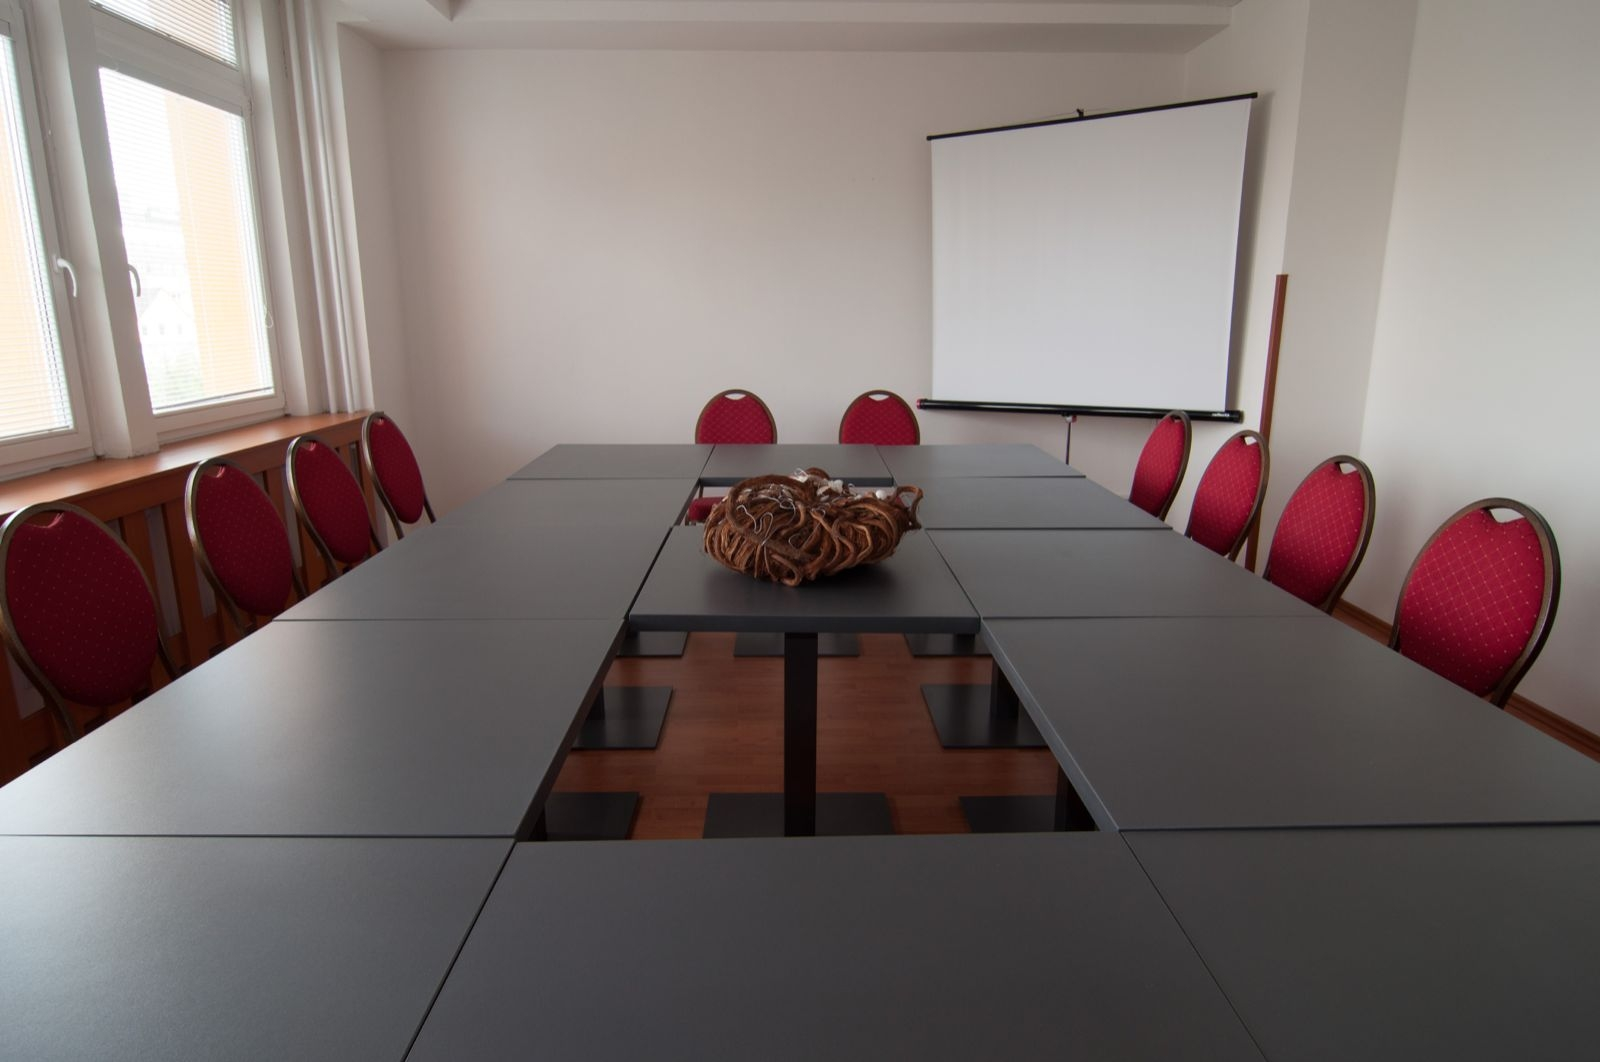 Hotel Avion Bratislava - The small conference room